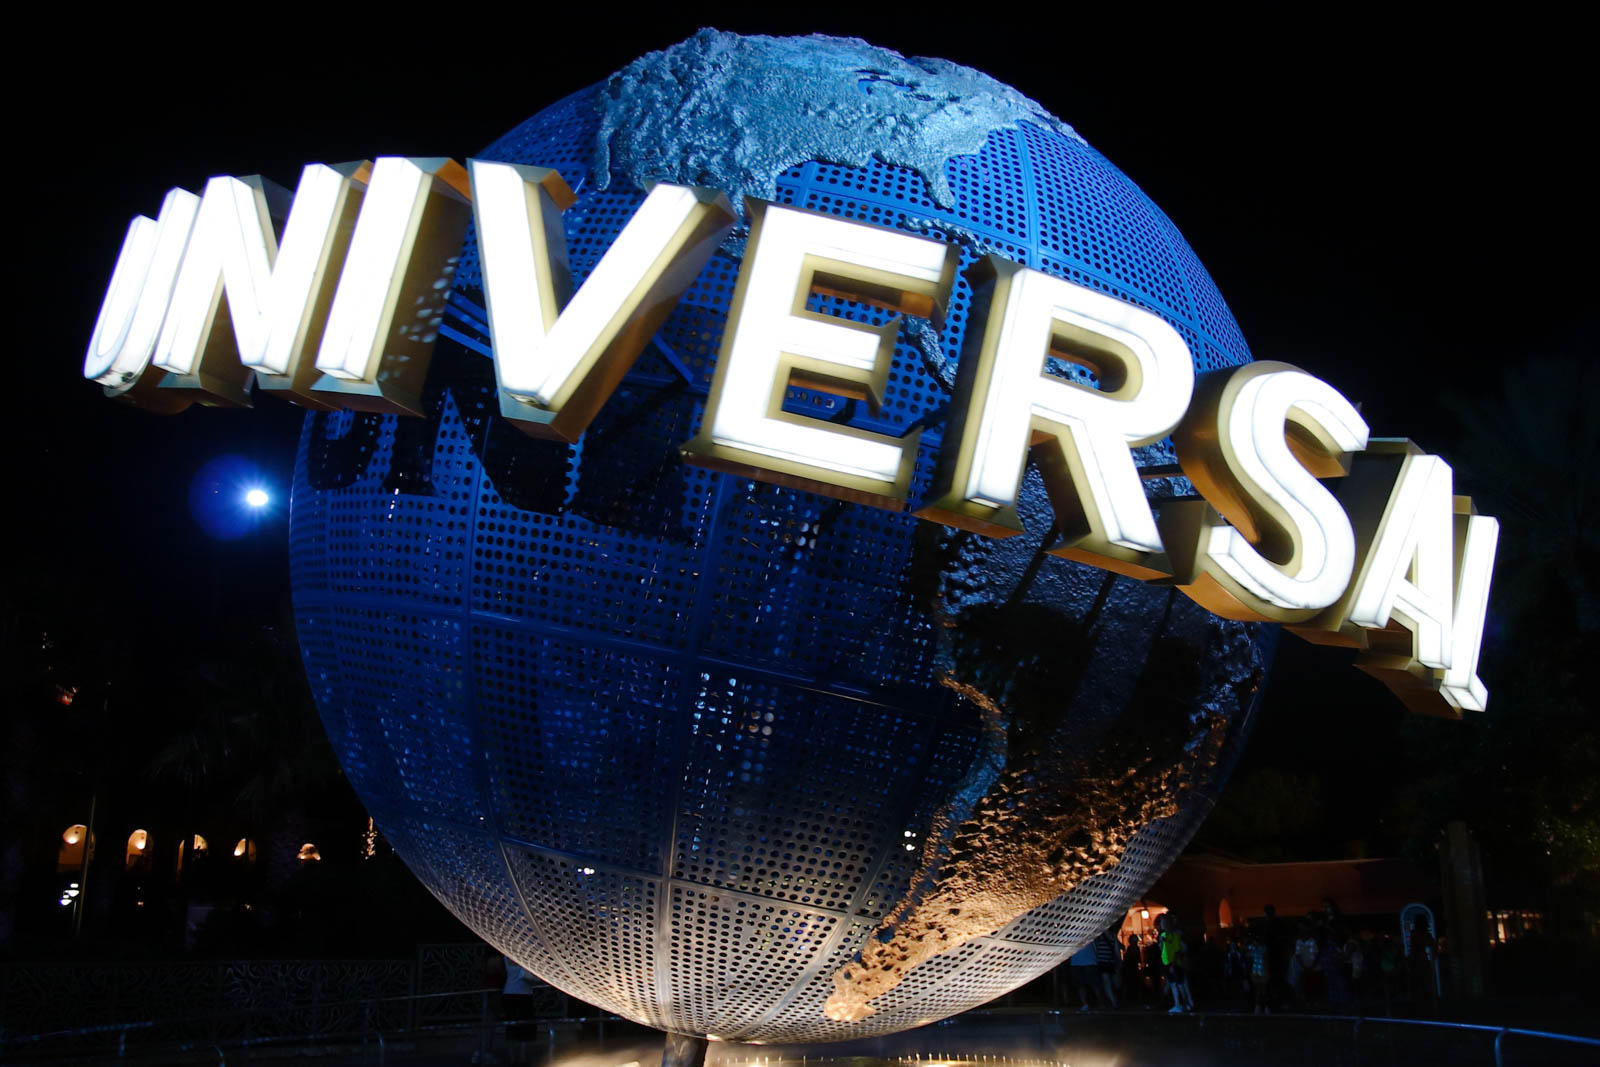 Universal studios sign at night in Orlando, Florida. There are plenty of things to do in Orlando that aren't theme parks, too. Some of the best things to do in Orlando are the many cool day trips.